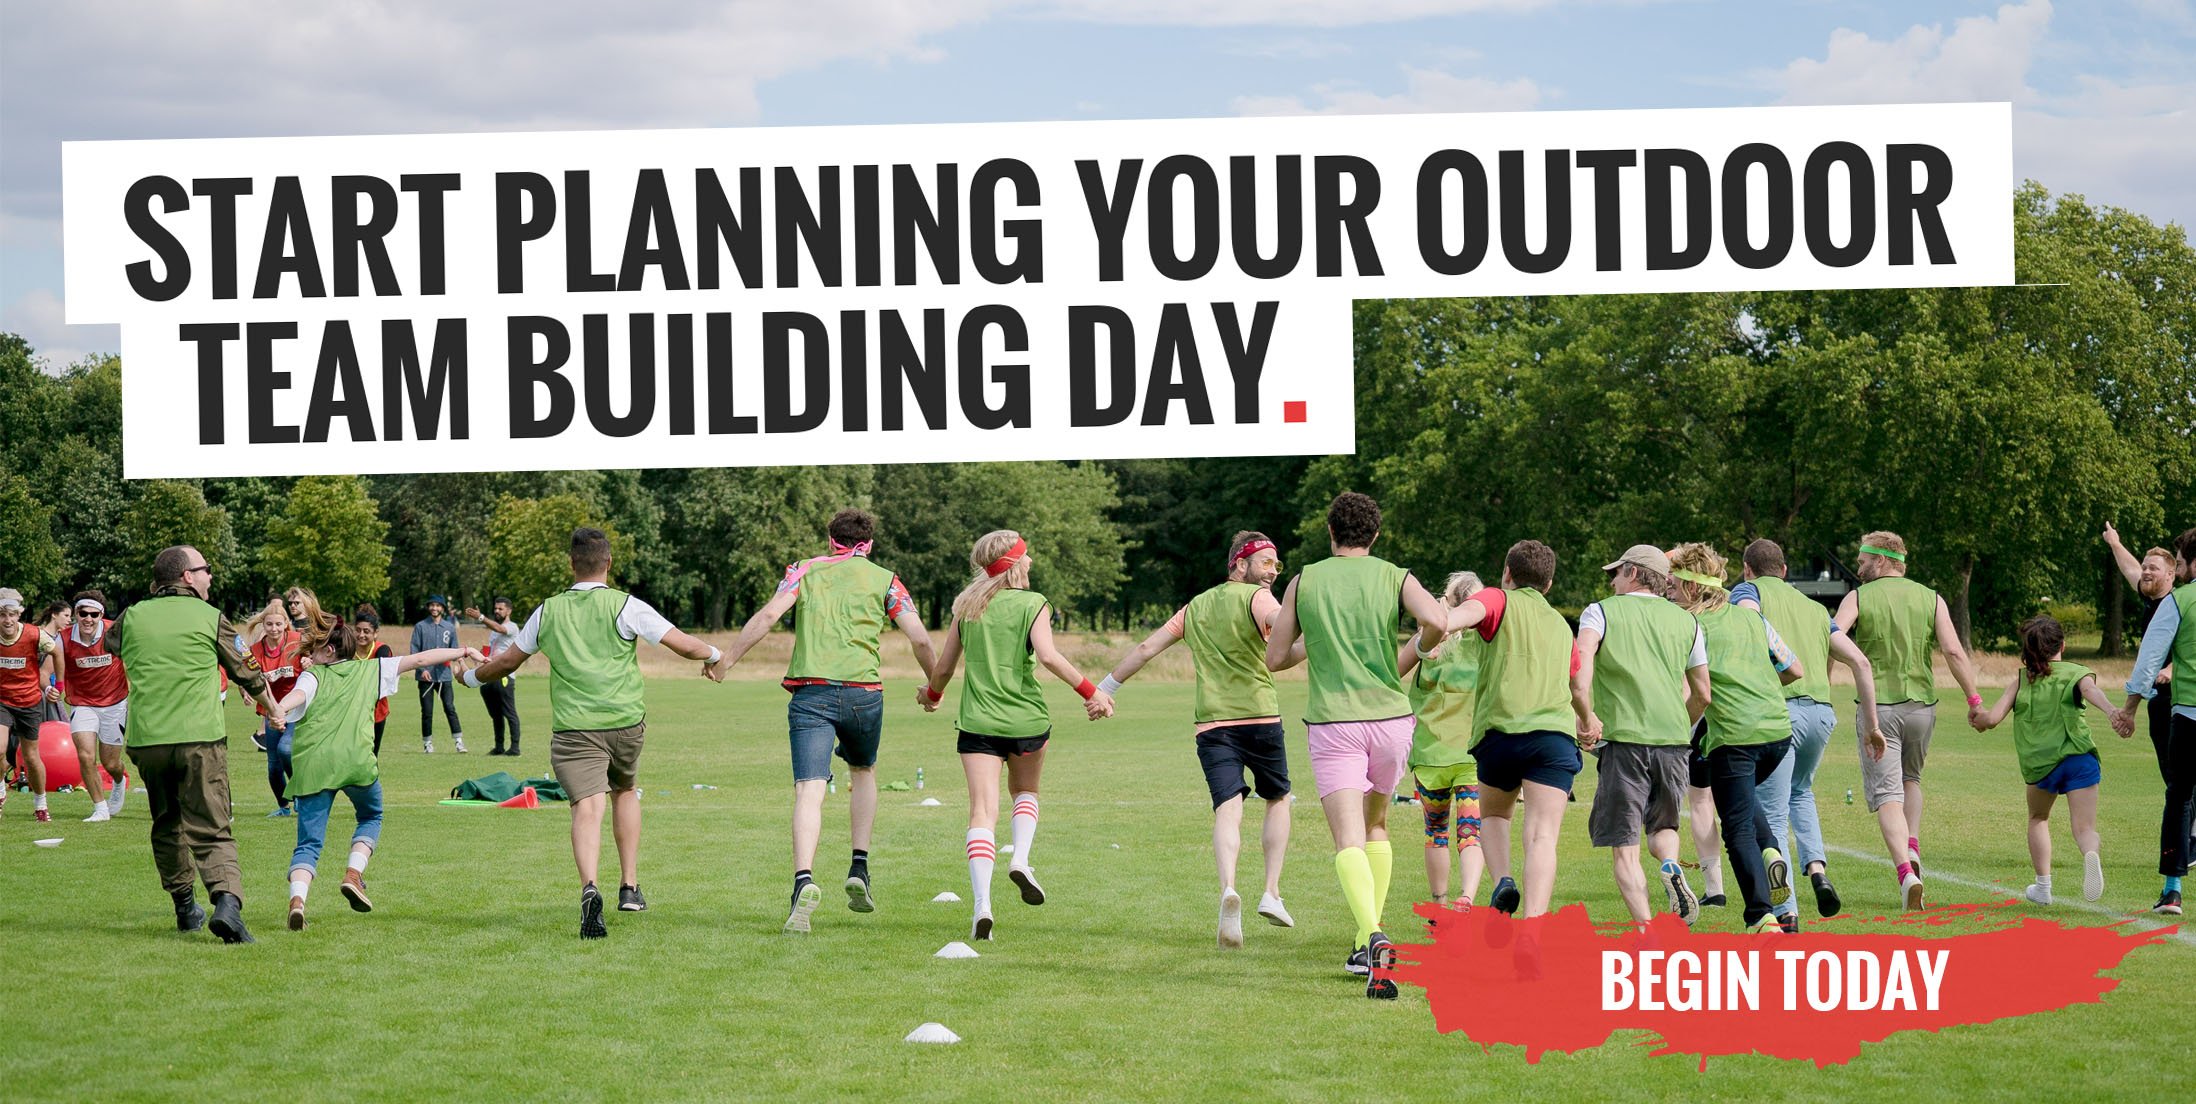 Start Planning Your Outdoor Team Building Day